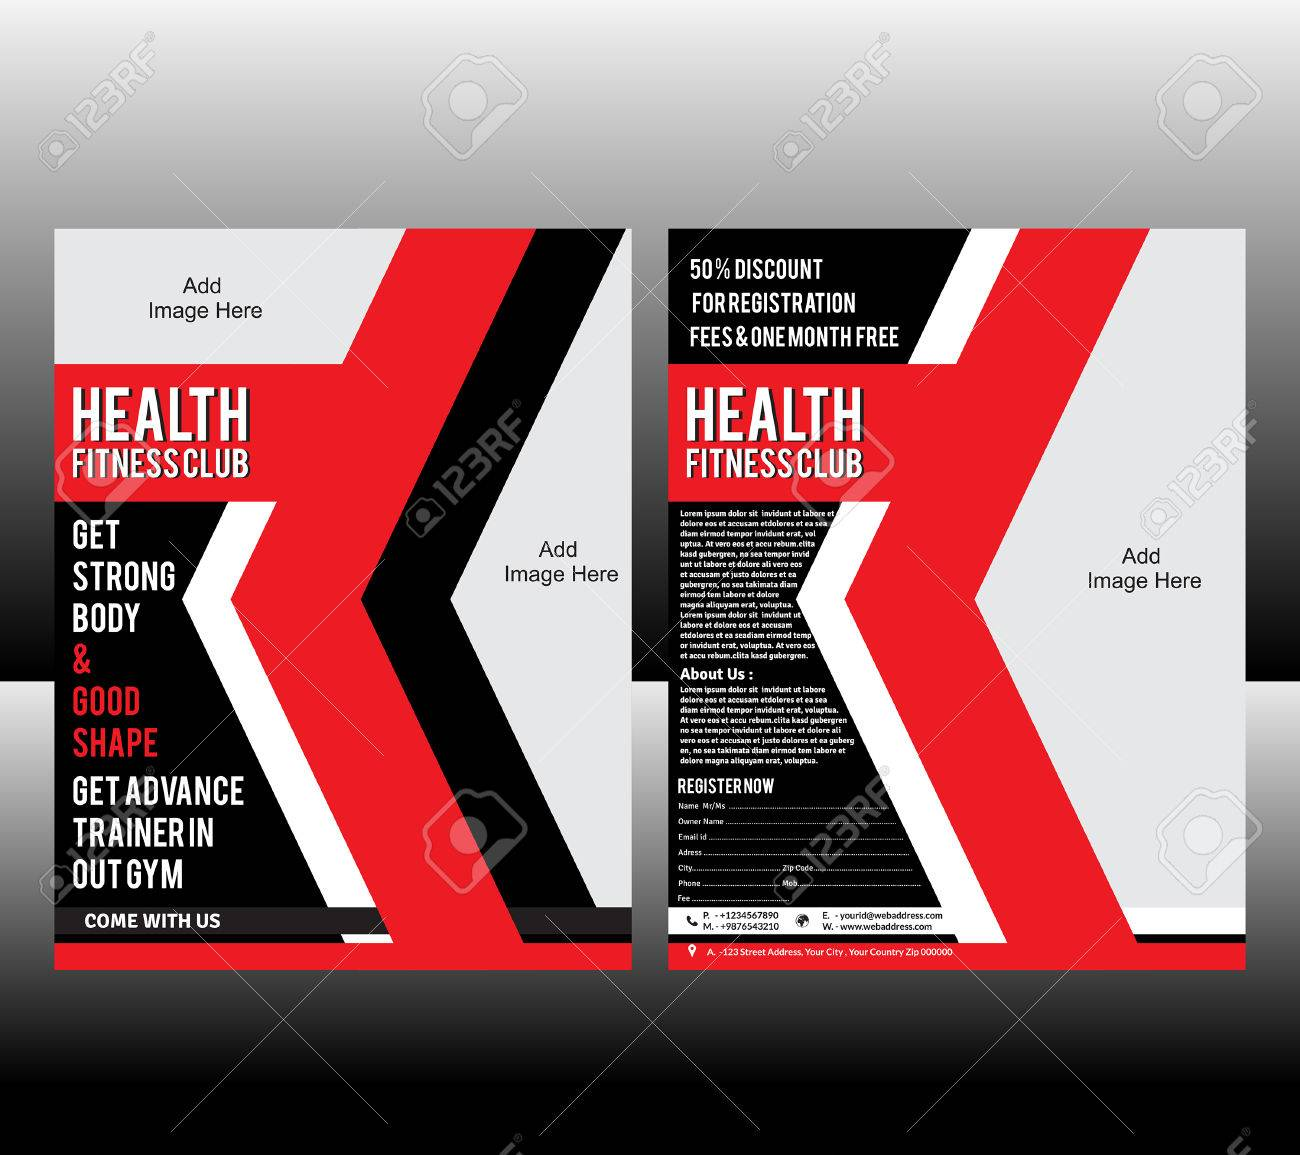 Free Fitness Flyer Templates sports certificate templates – Discount Flyer Template